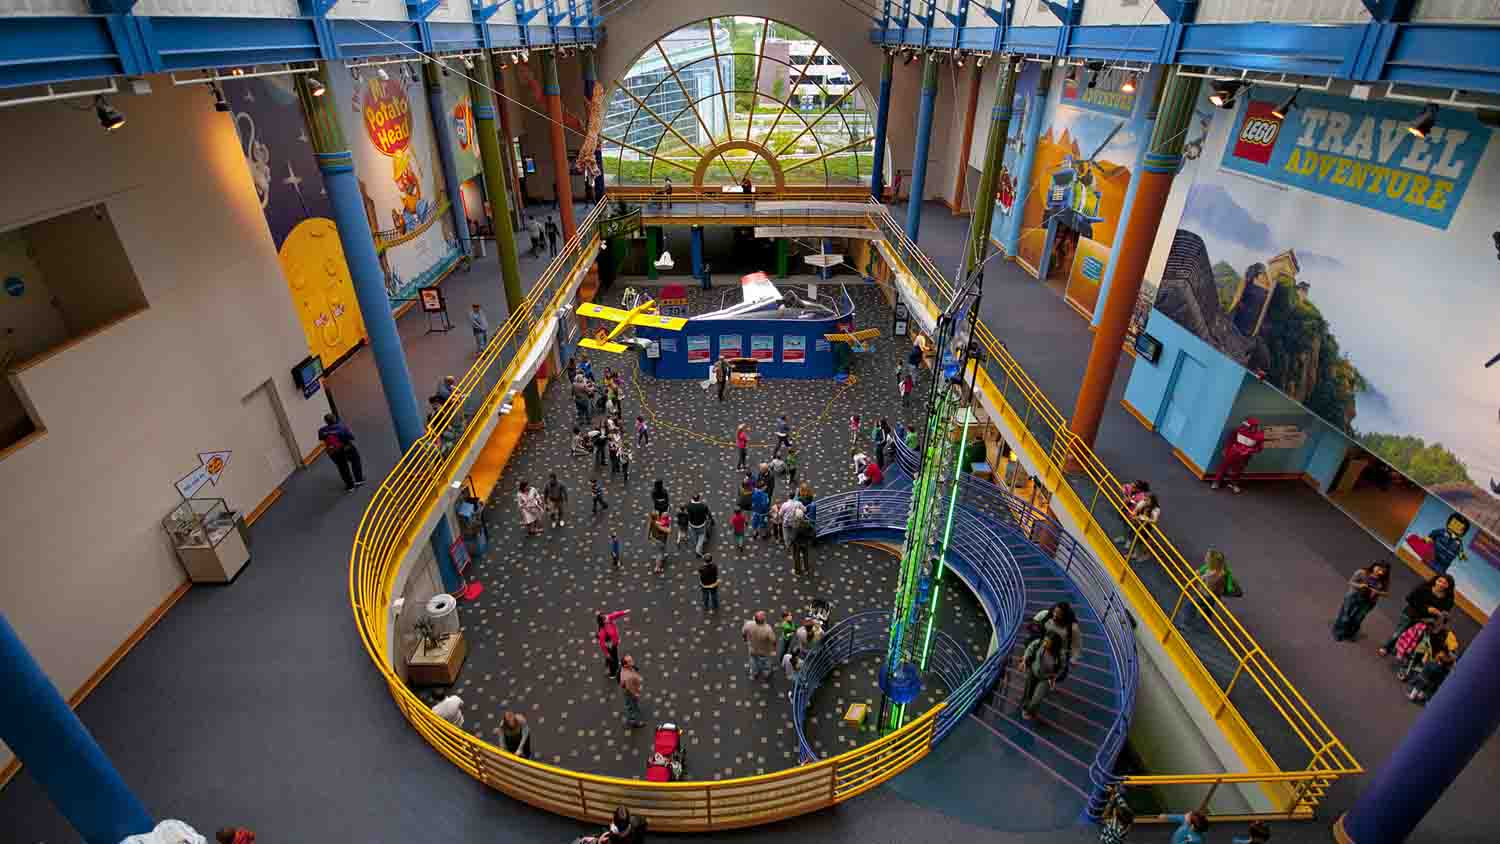 Childrens museum of indianapolis 3